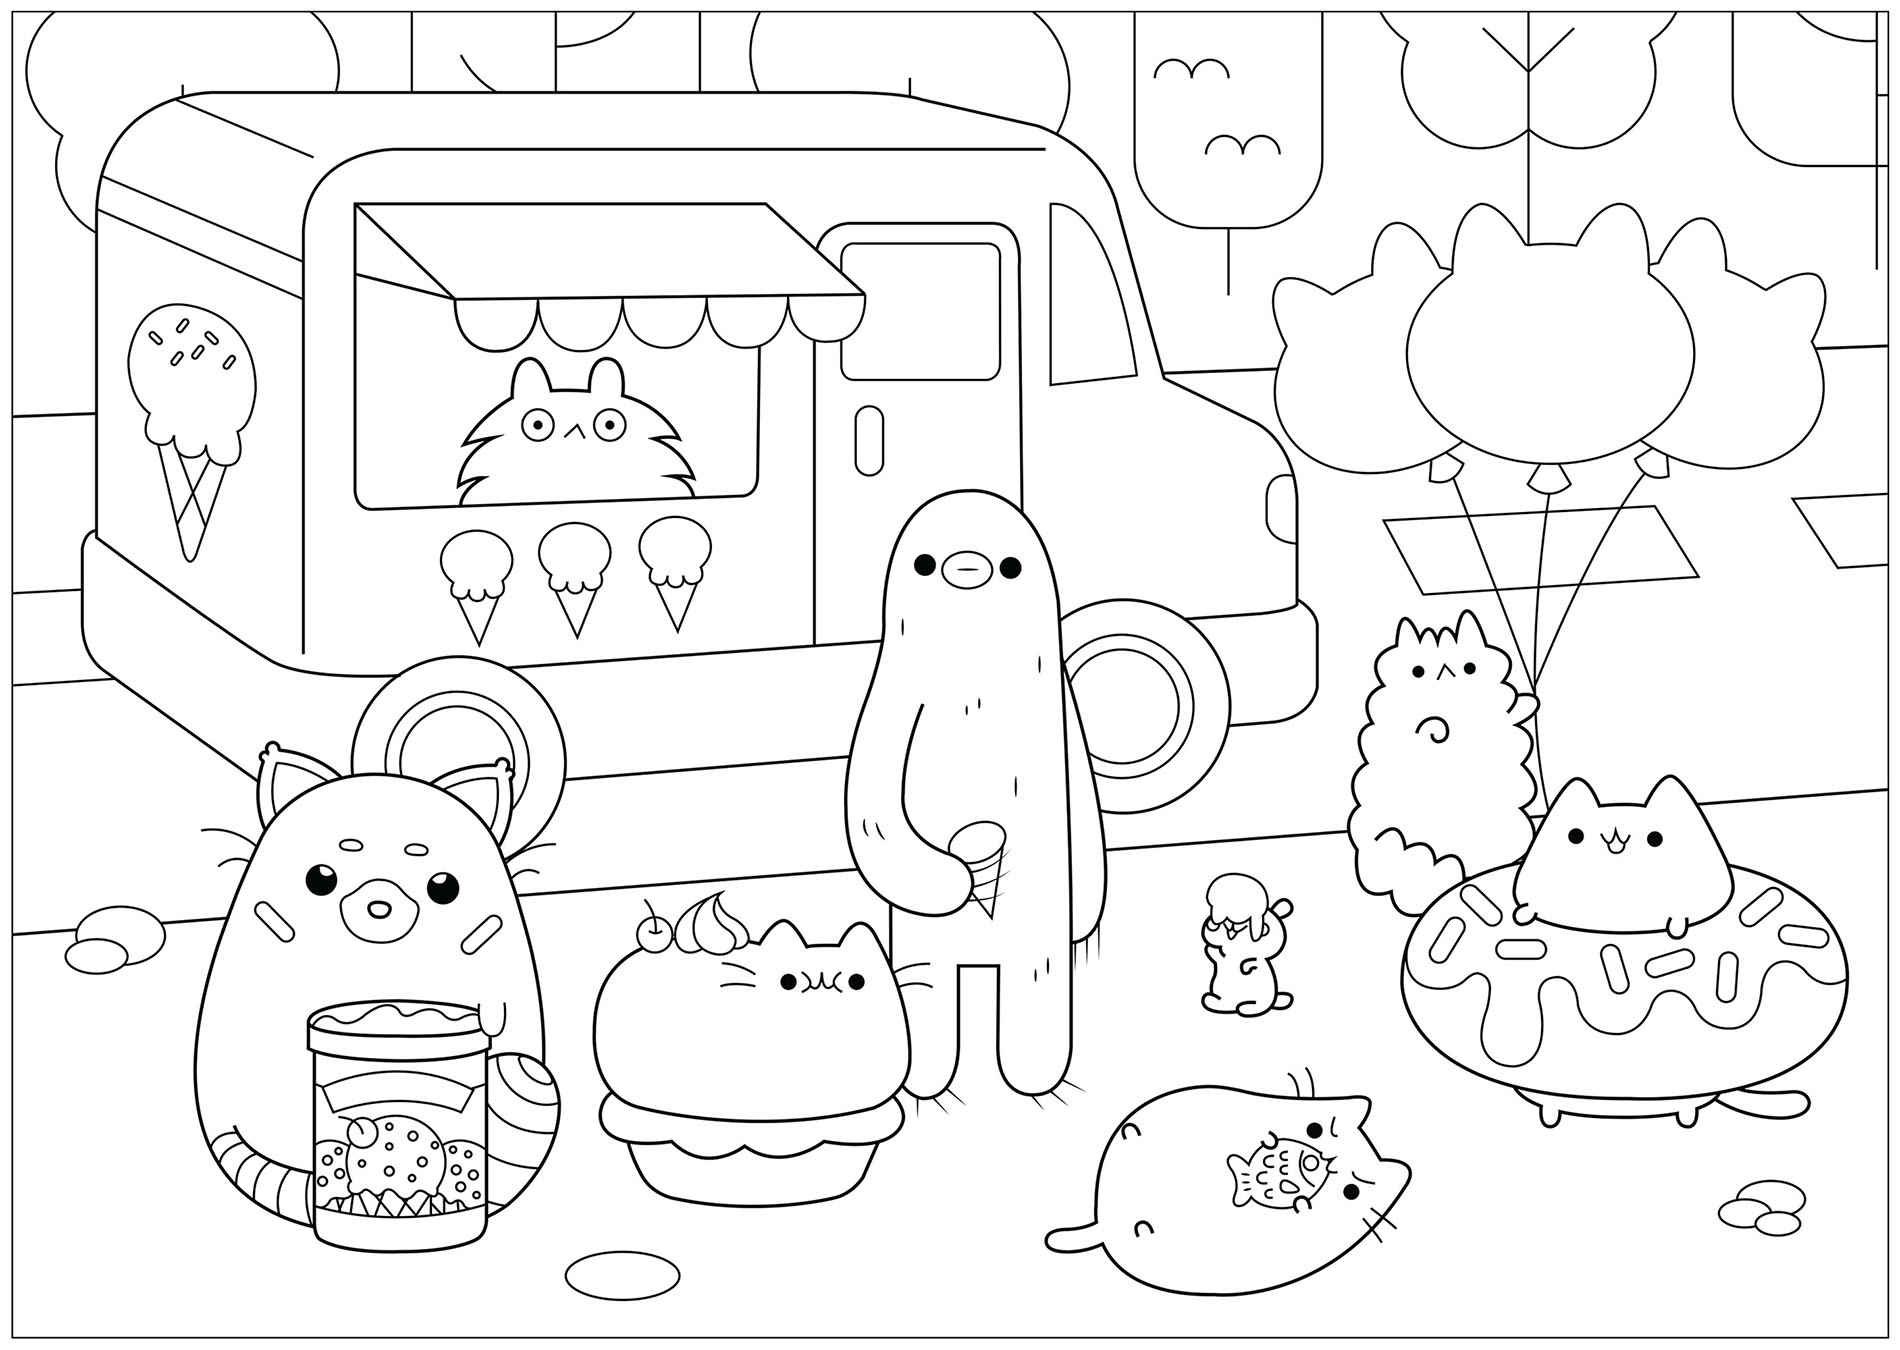 Simple Pusheen coloring page to print and color for free